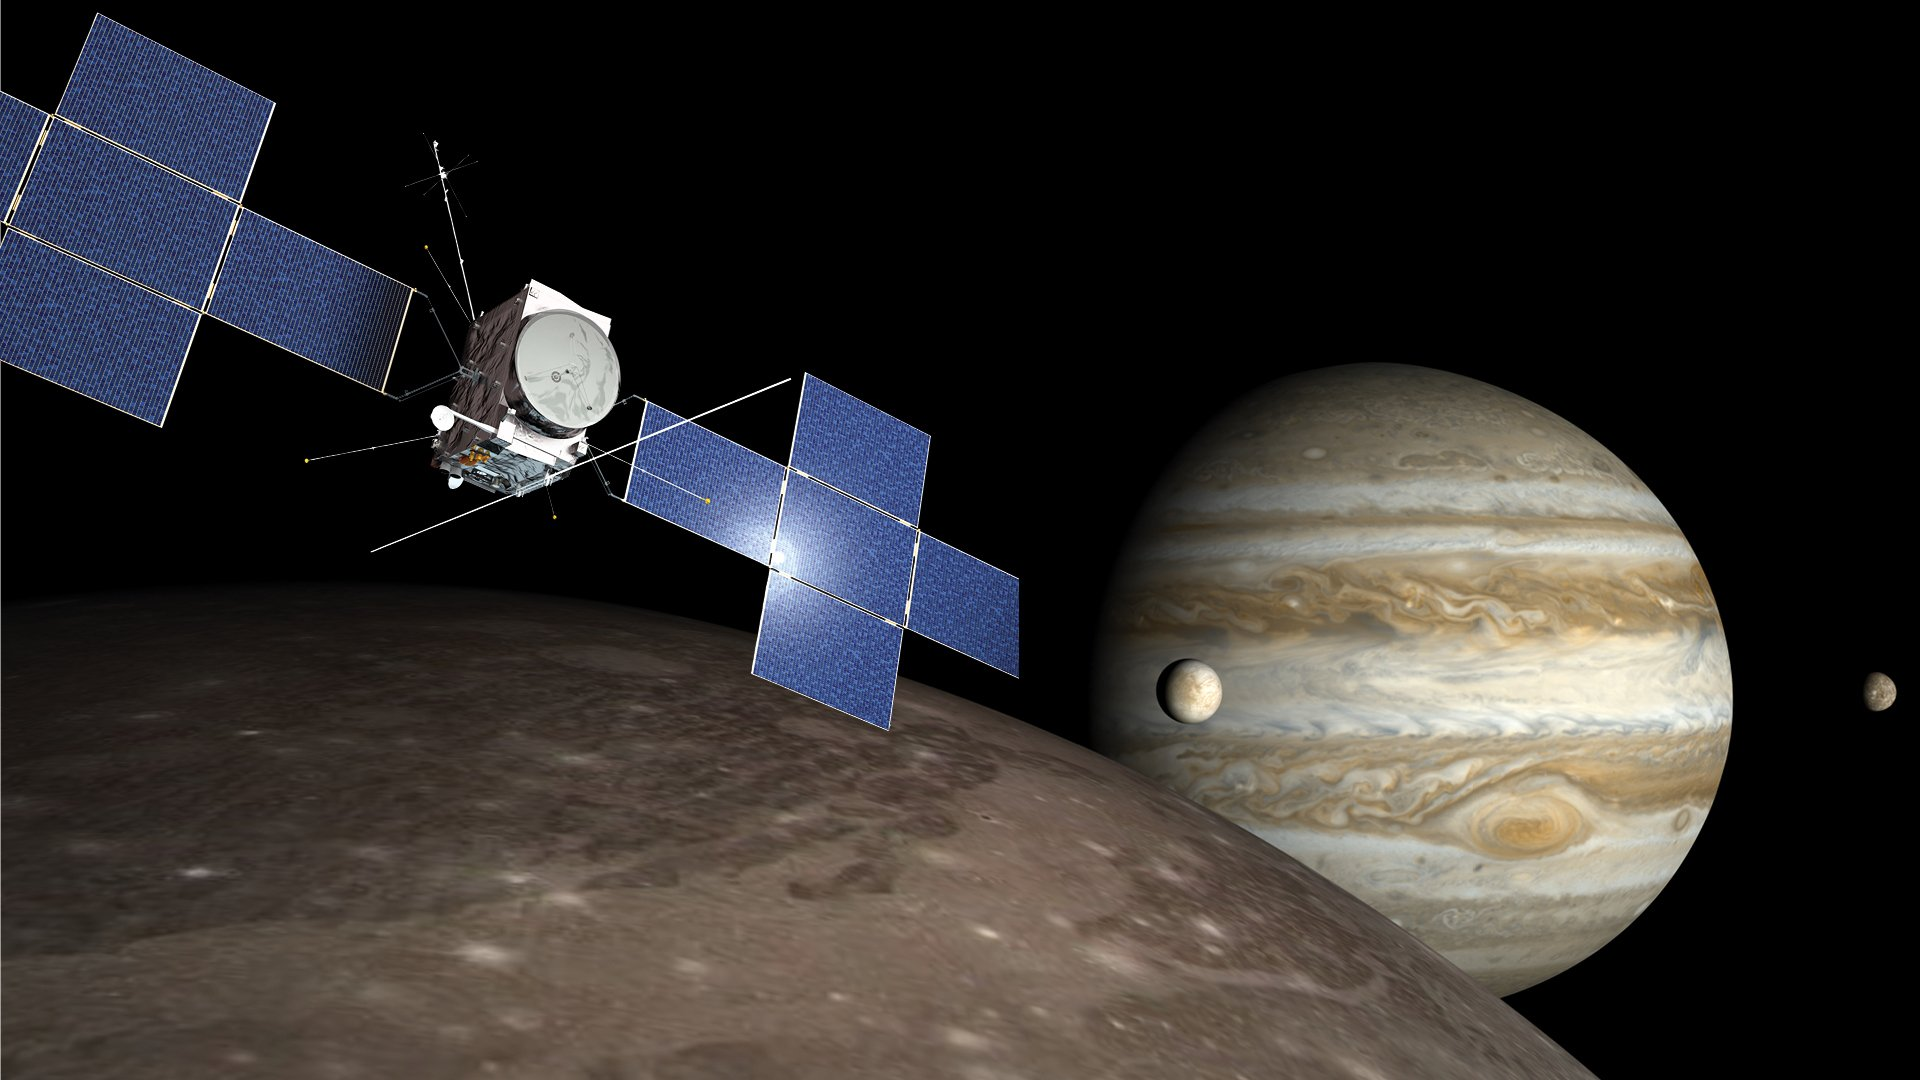 JUICE - Searching for life on Jupiter's icy moons - Space exploration -  Airbus